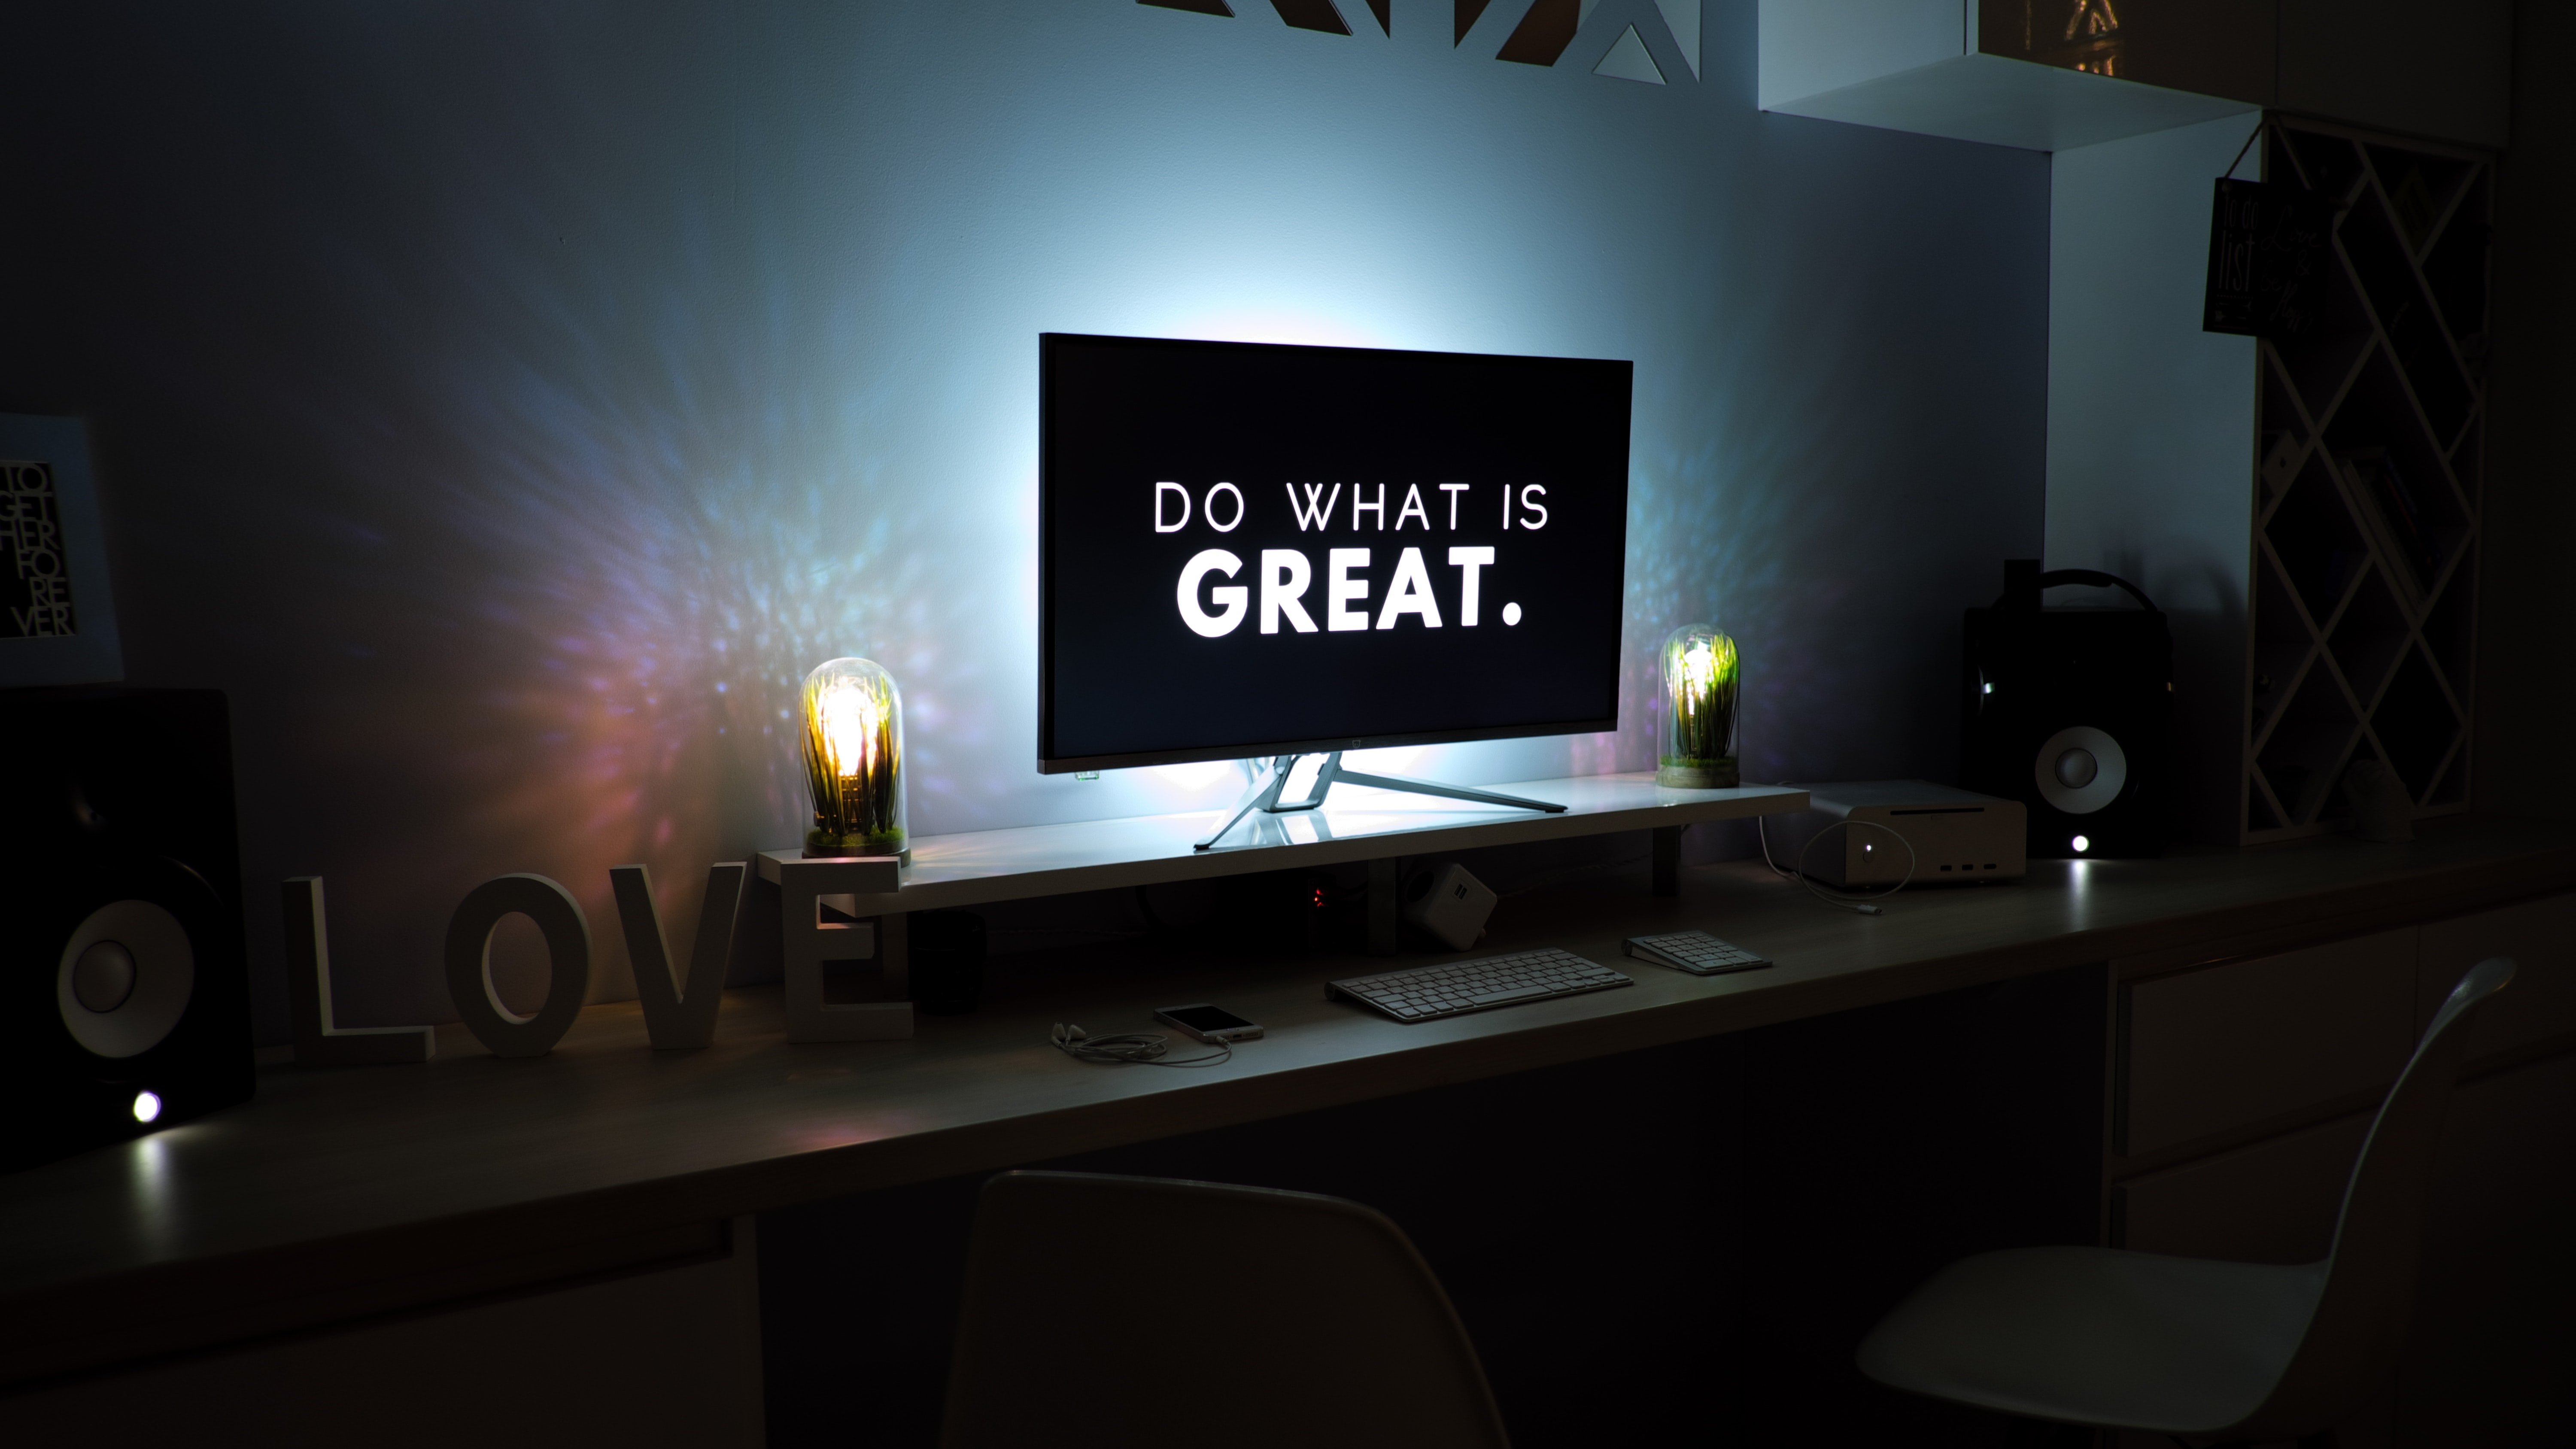 Do what is great, written on a computer monitor.